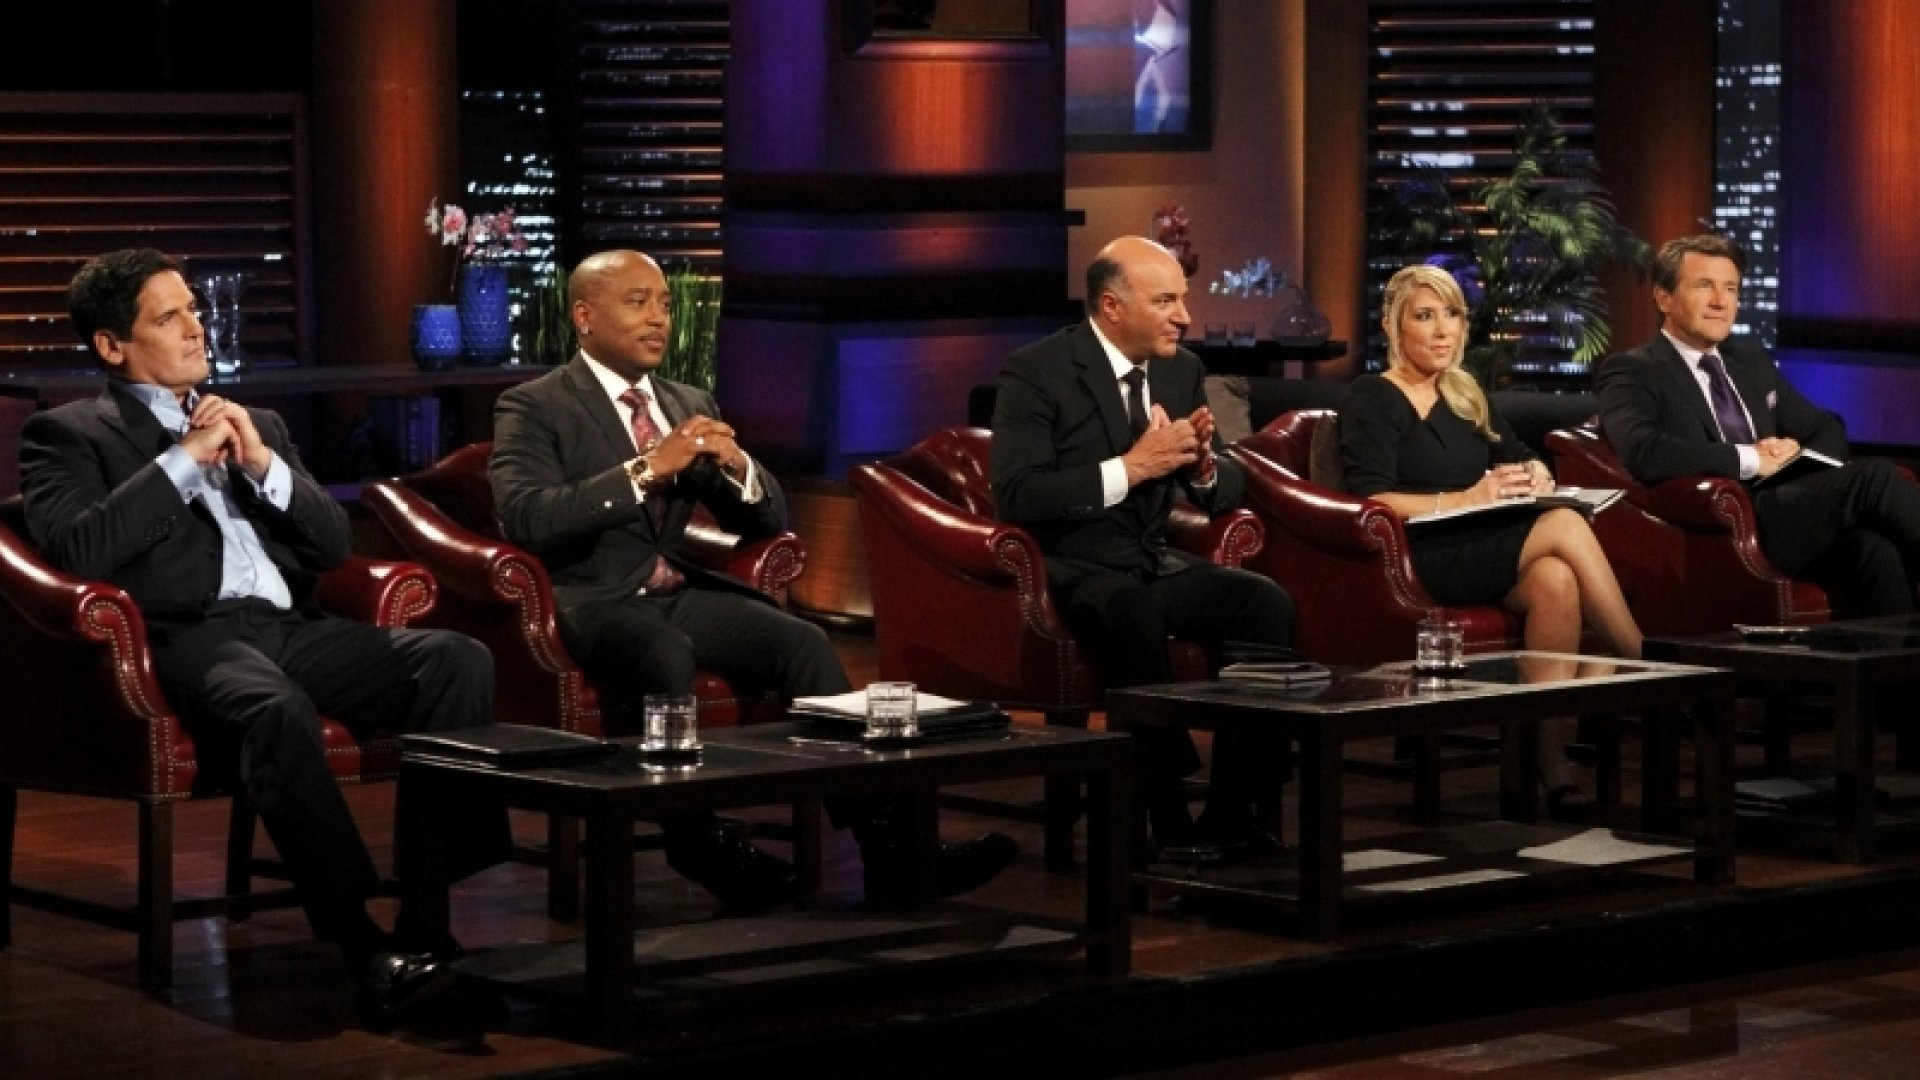 What Your Business Should Learn from 'Shark Tank'